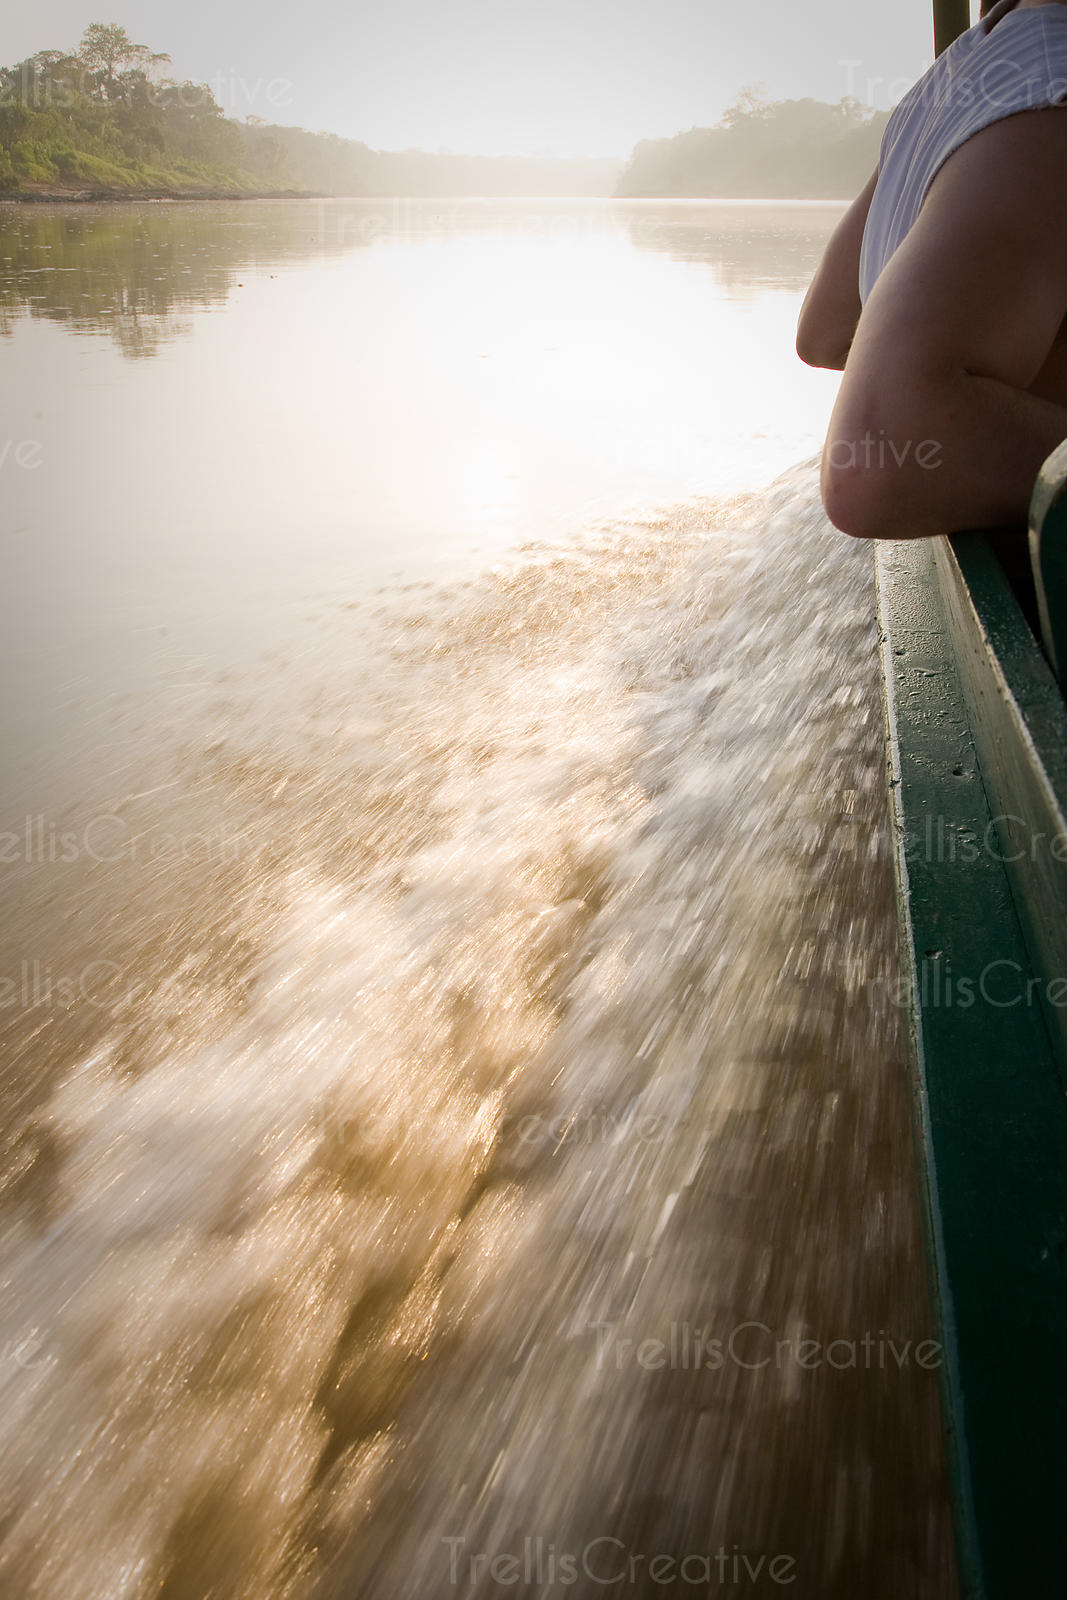 Leaning over the side of a motorized canoe along the Tambopata river in Amazonia